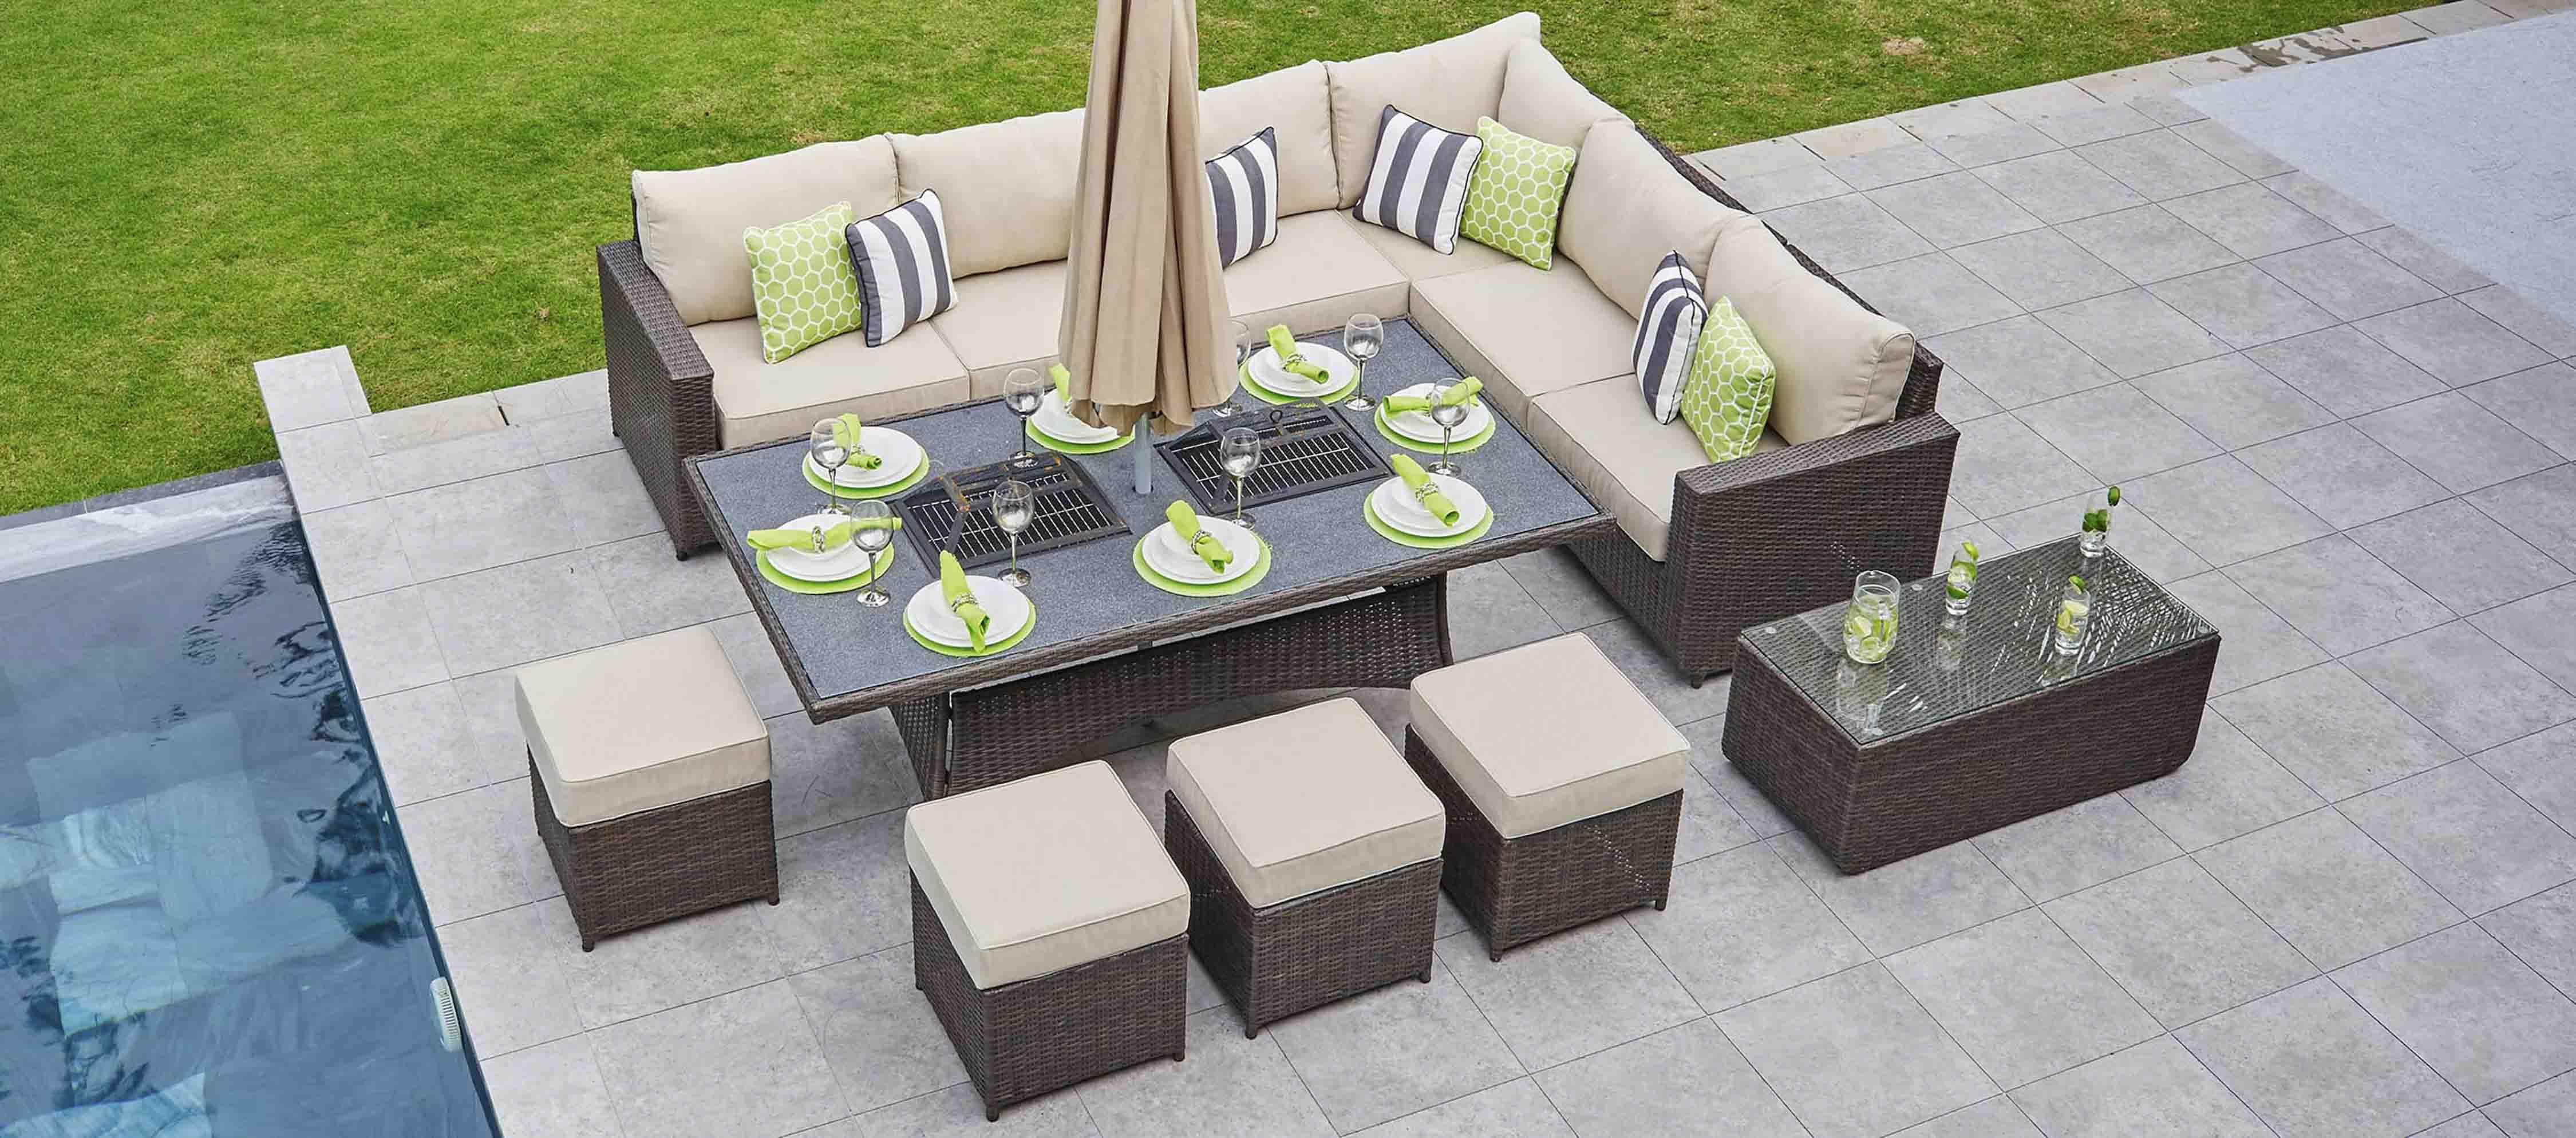 Halo 2j Extended Corner Sofa Combo With Charcoal Fire Pit Dining Table Footstools Sofa Dining Combos Wi Gas Firepit Fire Pit Table Outdoor Furniture Sets